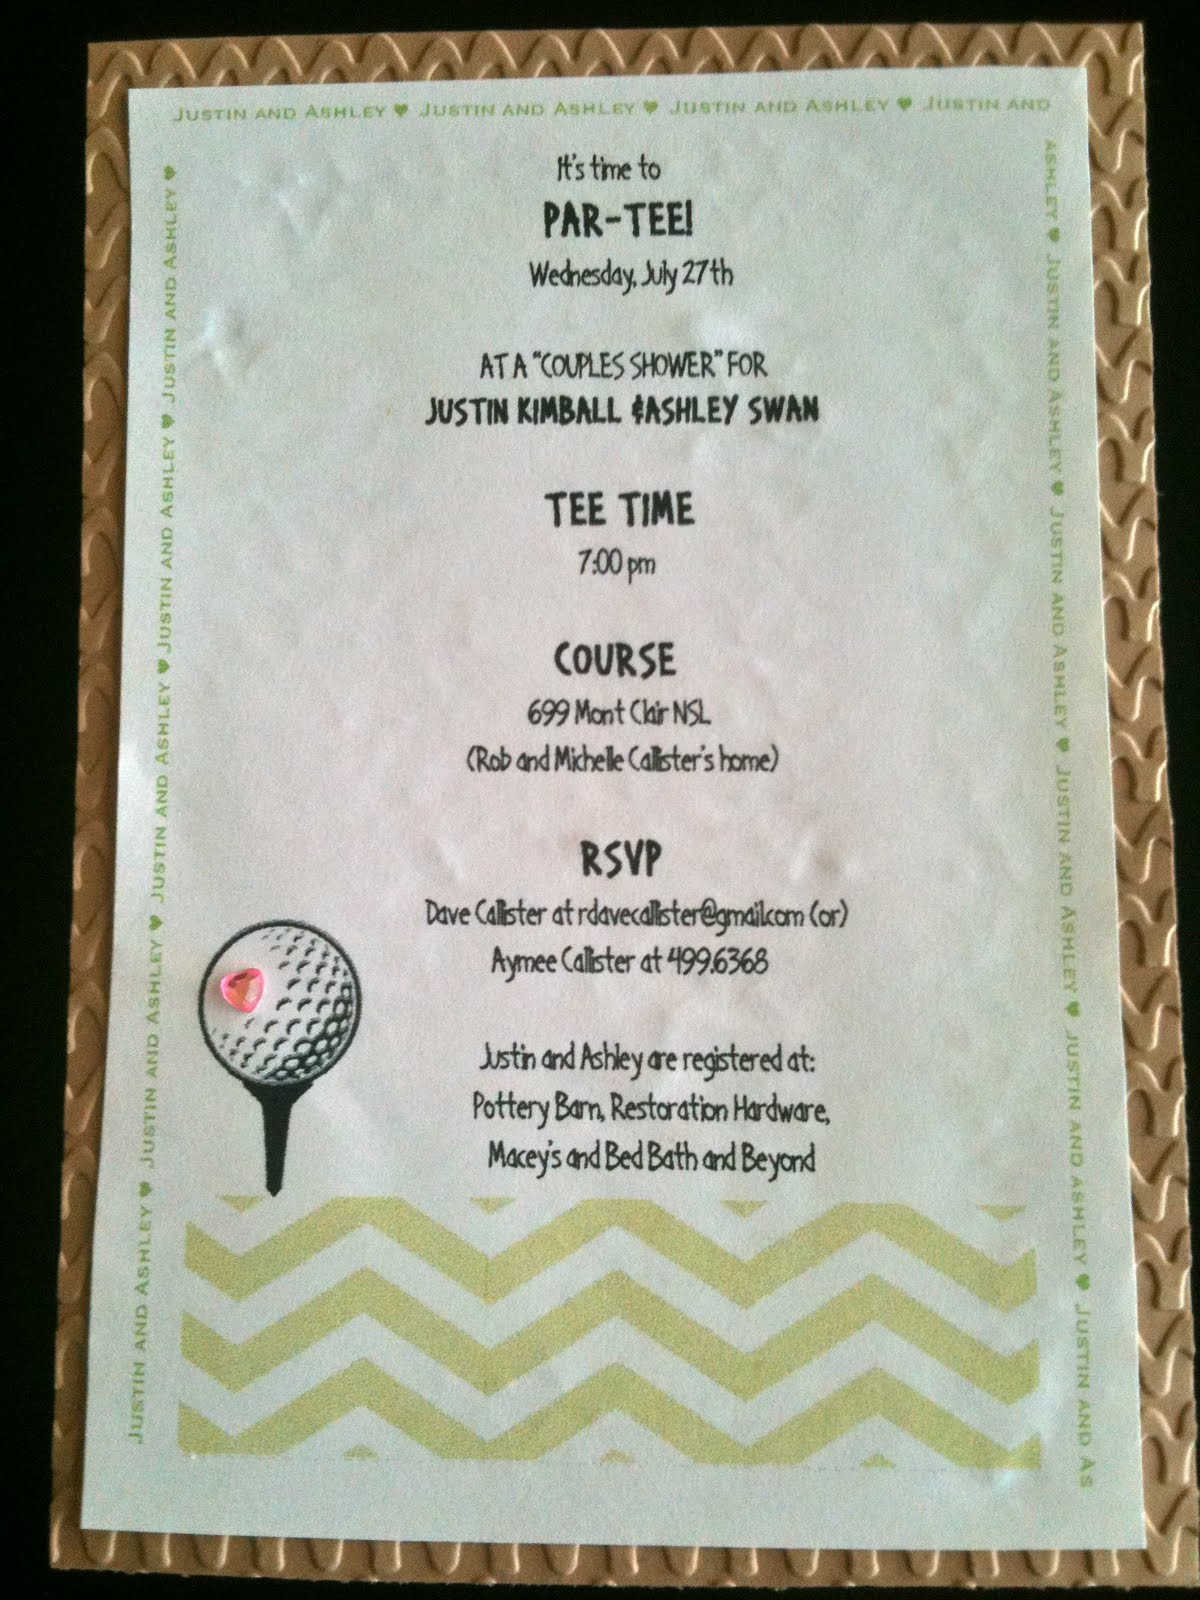 Just for Fun: Golf themed-couples bridal shower